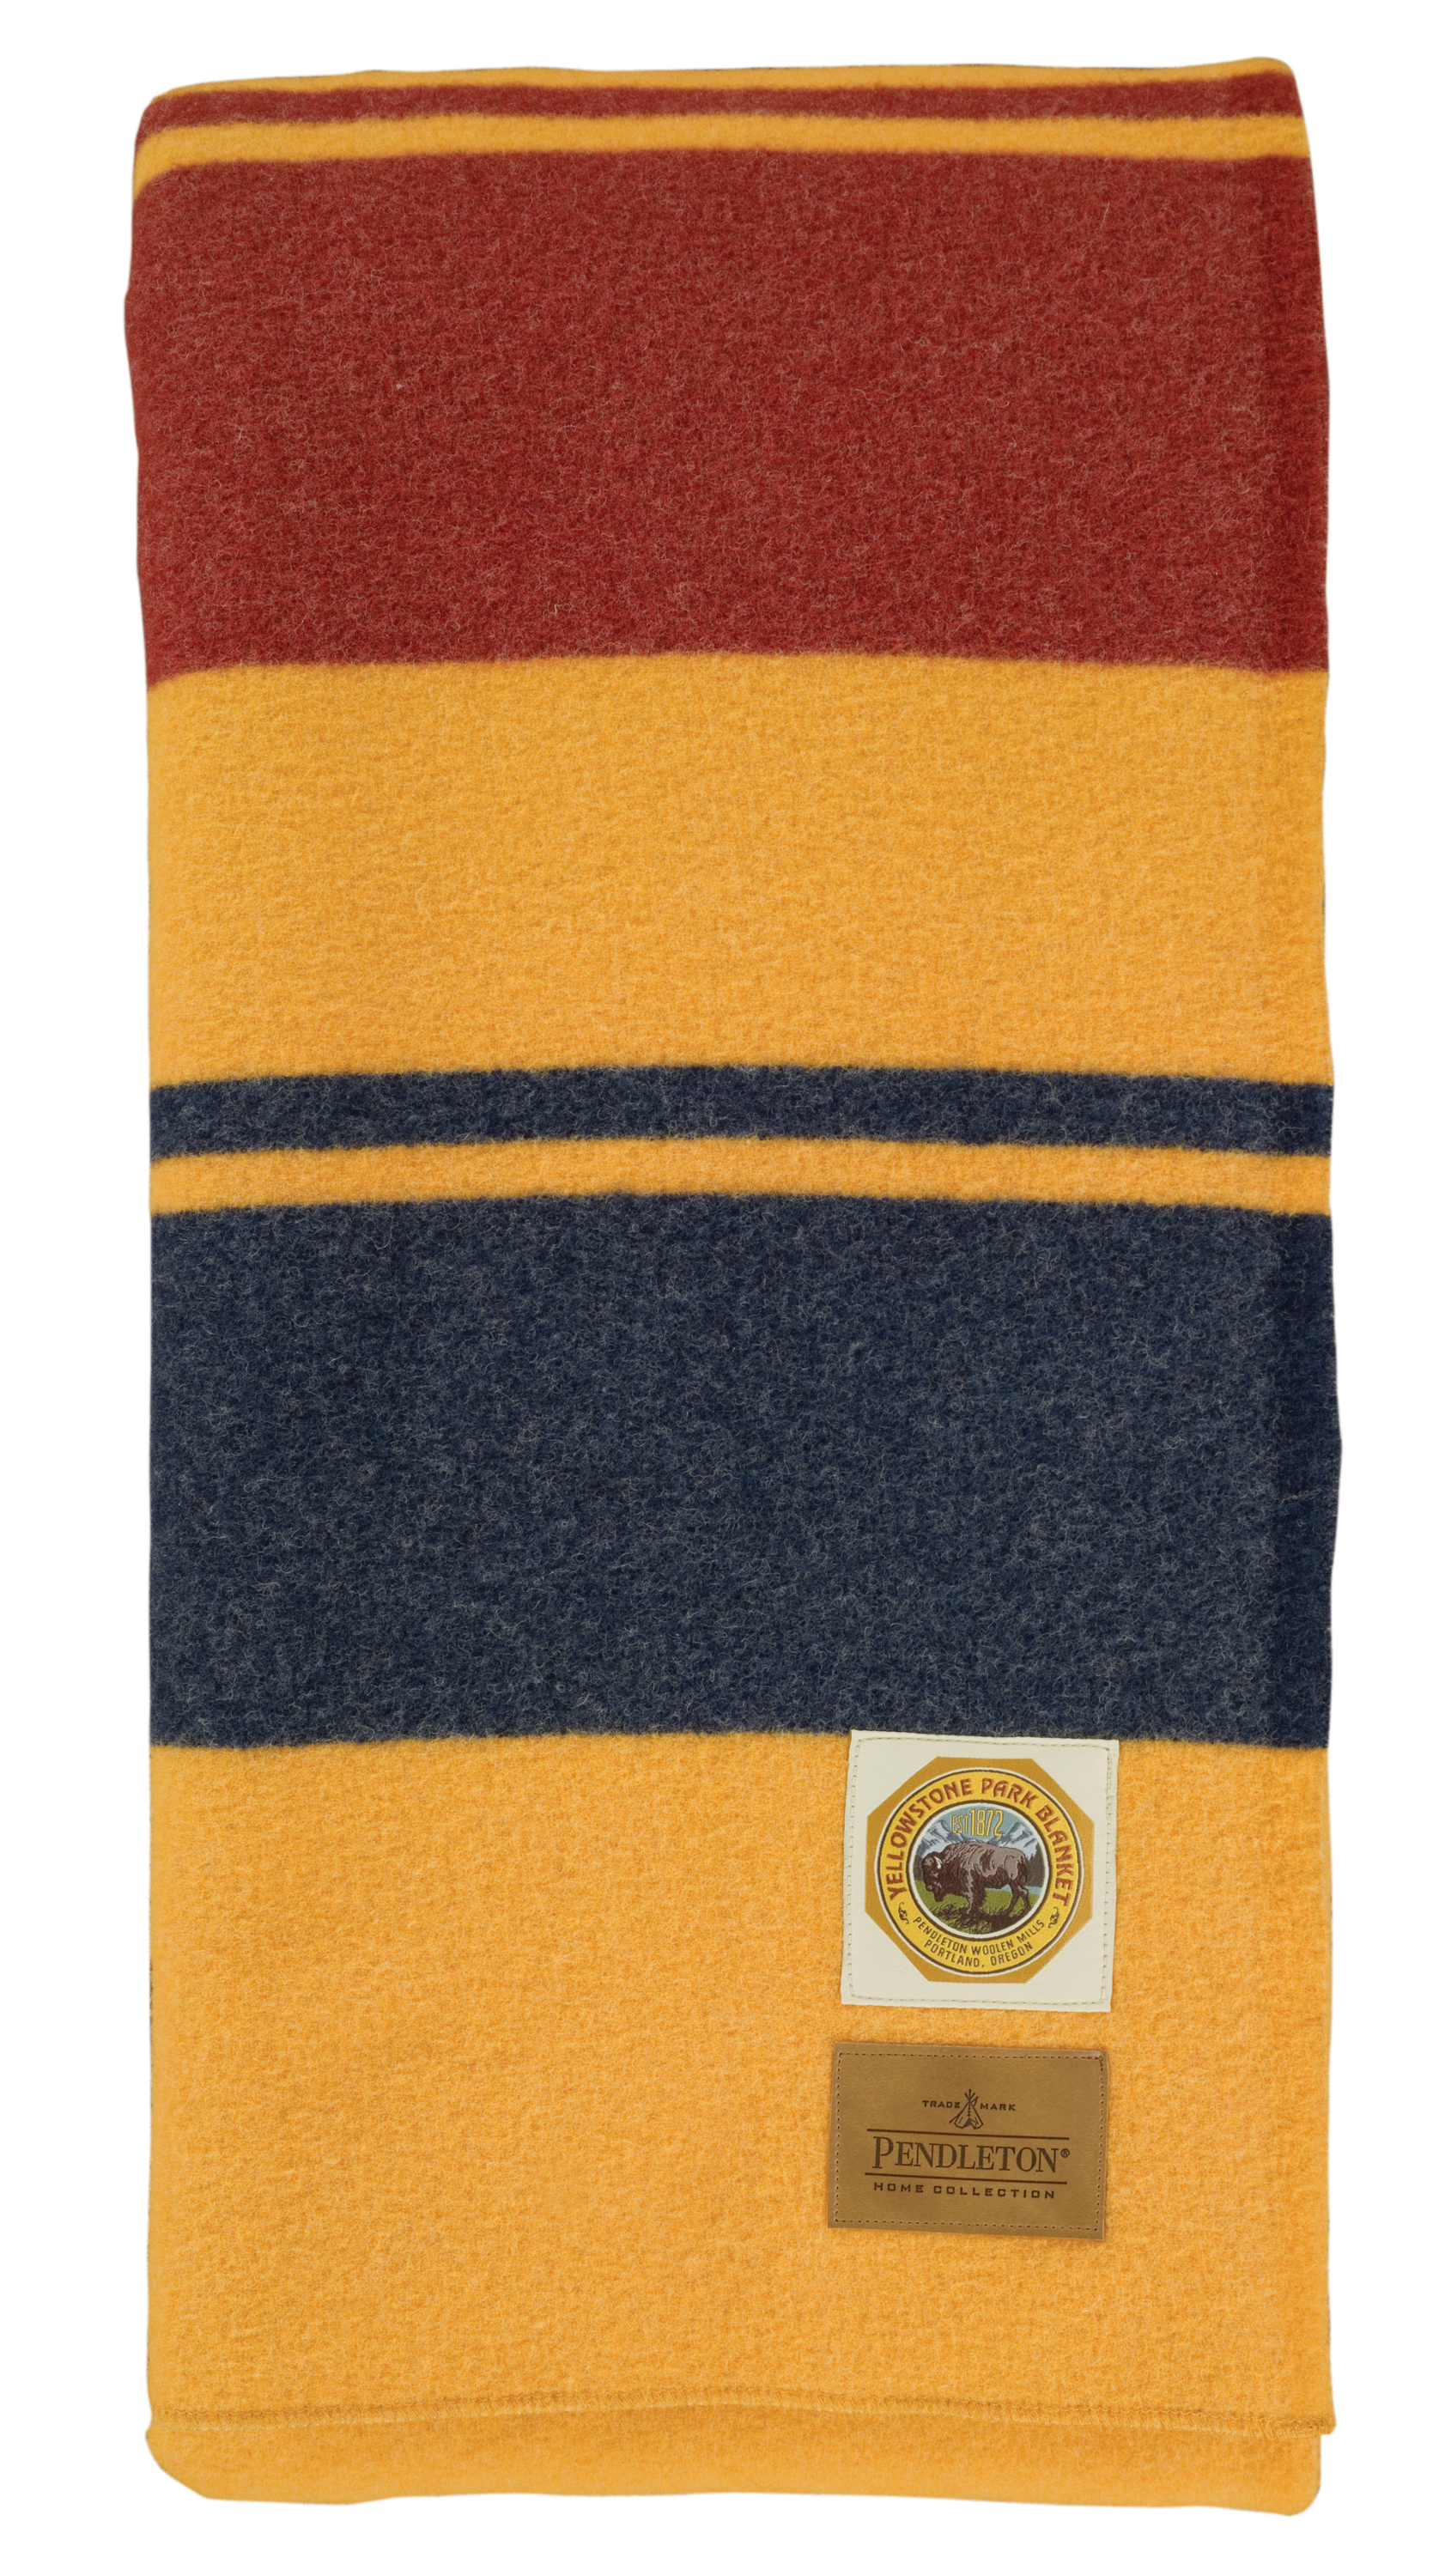 Peddelton YellowstonePeddelton Yellowstone Blanket